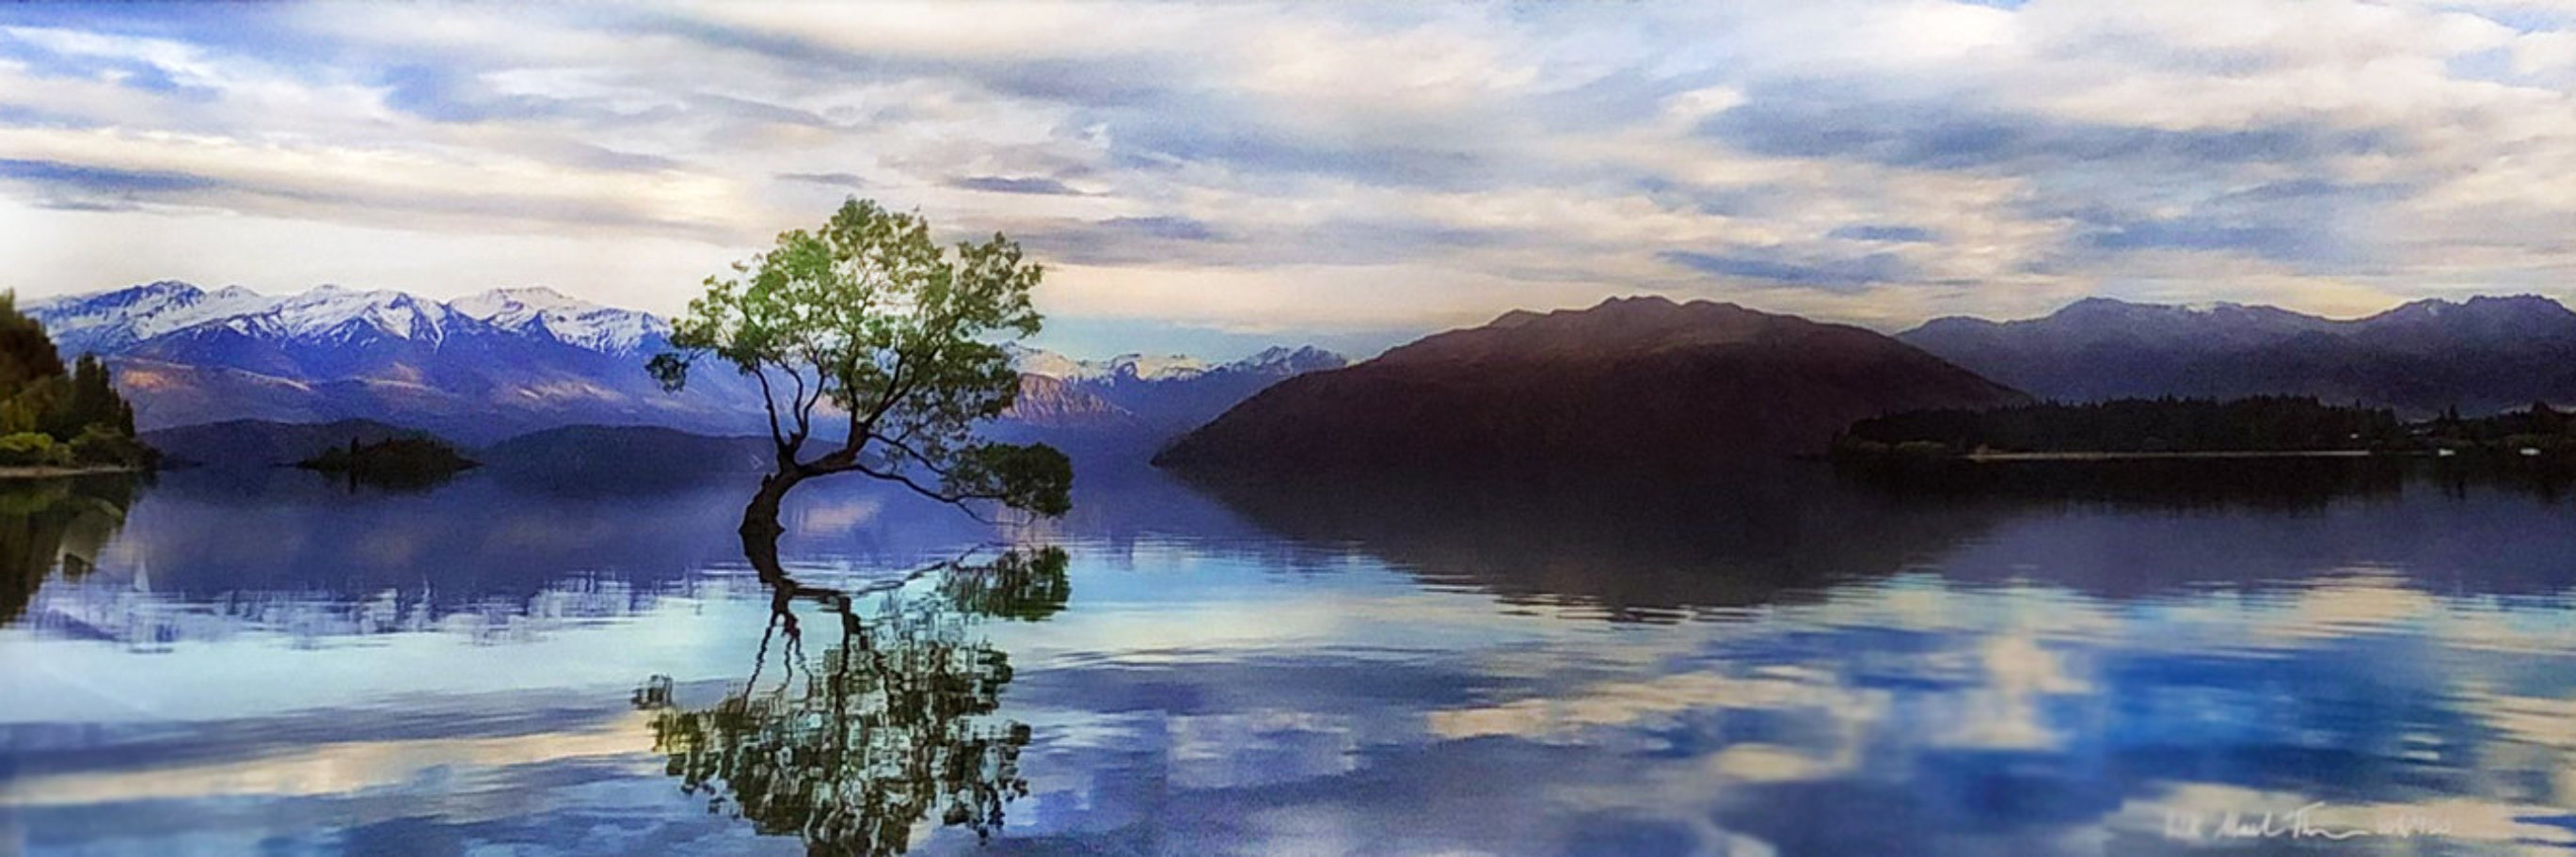 Lake Wanaka   Panorama by Peter Lik